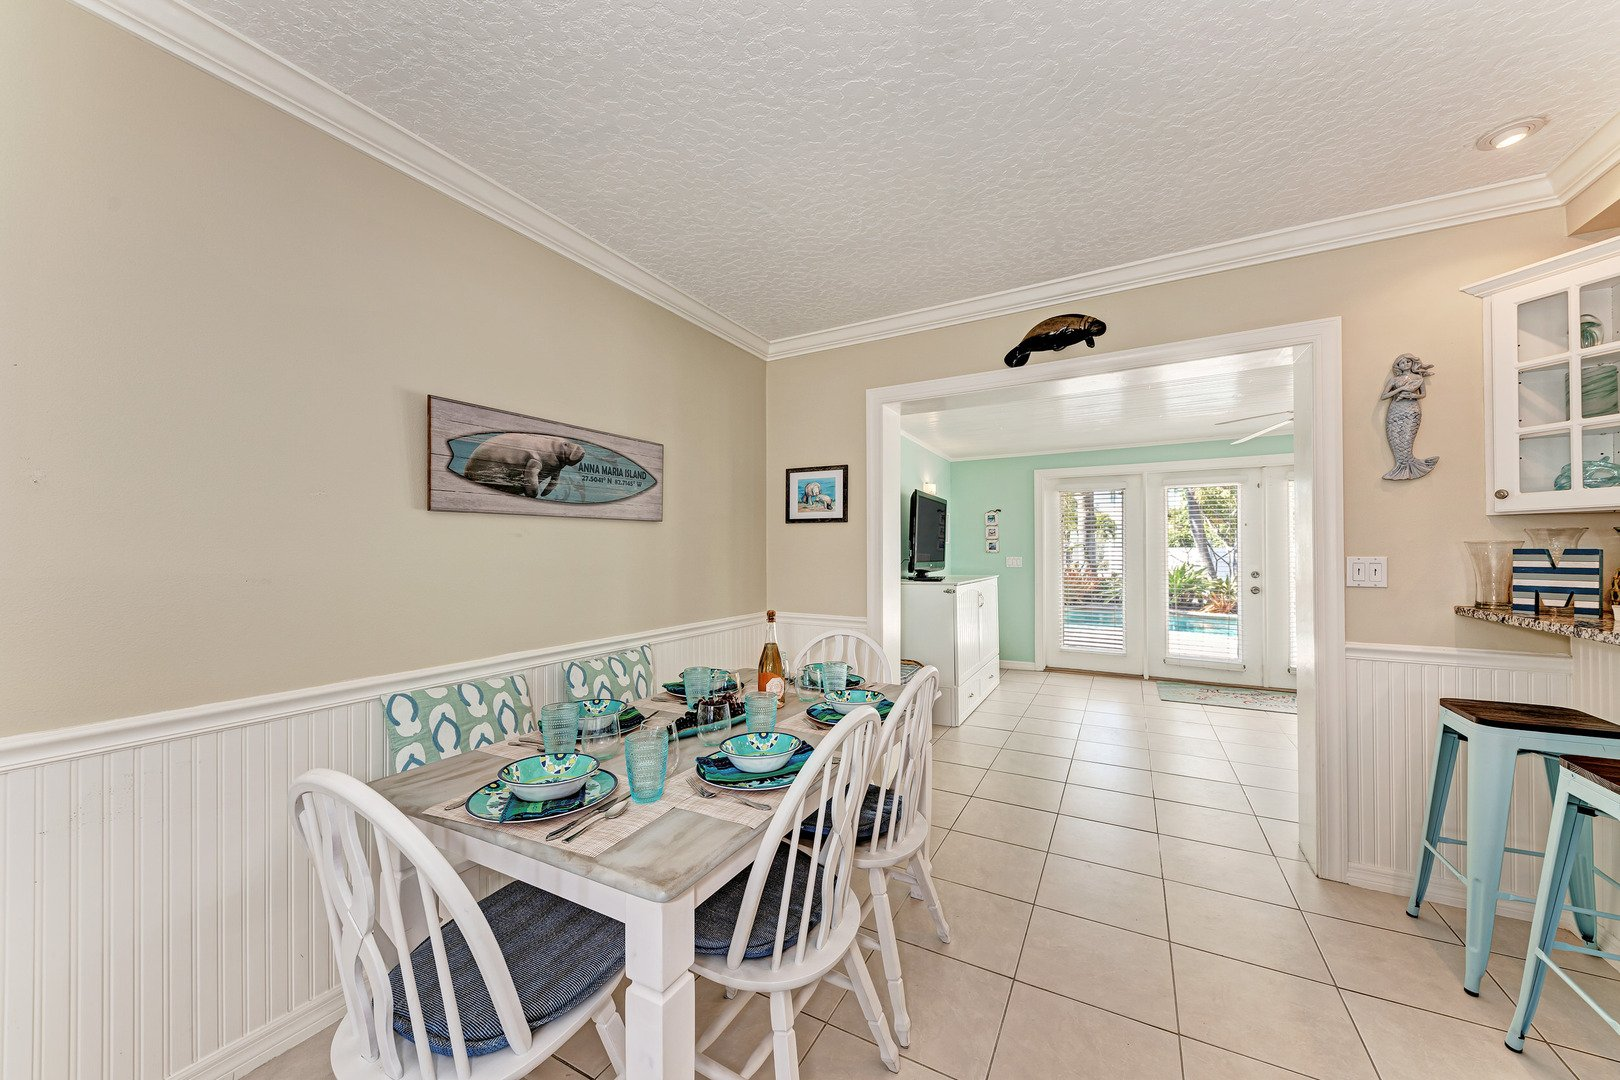 Mermaids & Manatees dining room off the kitchen